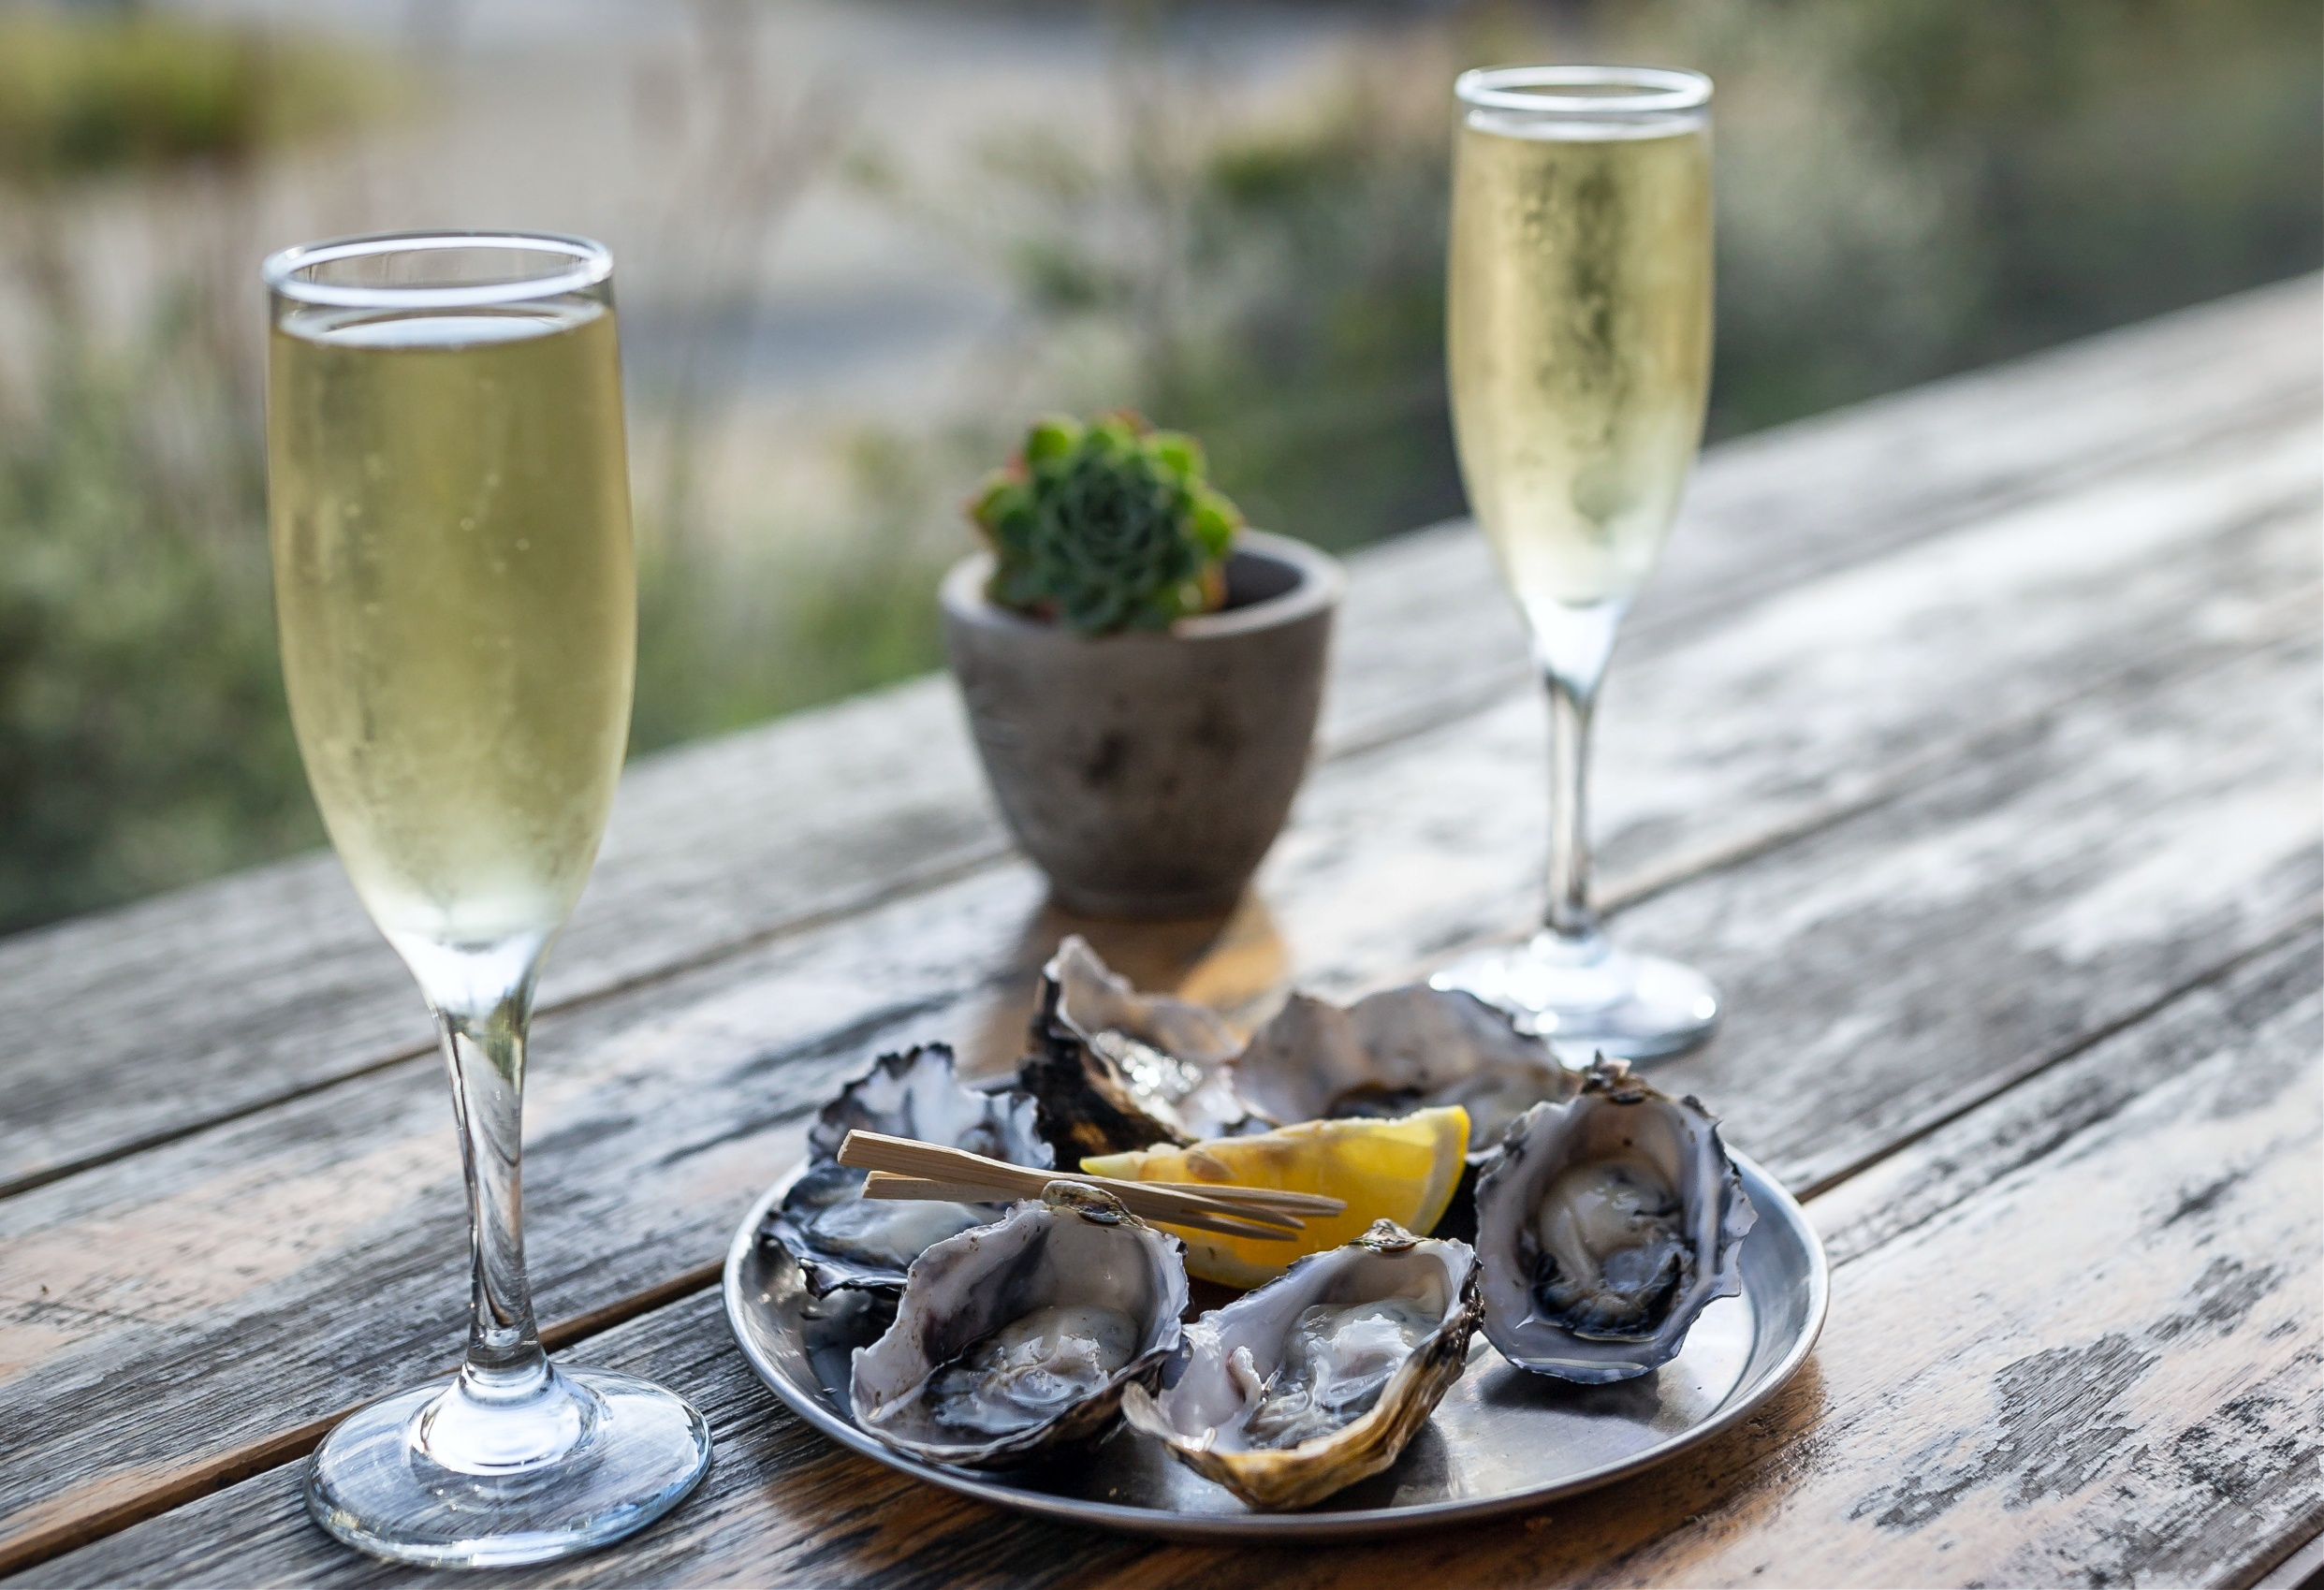 'Say it with seafood': Industry urges lovers to buy Aussie